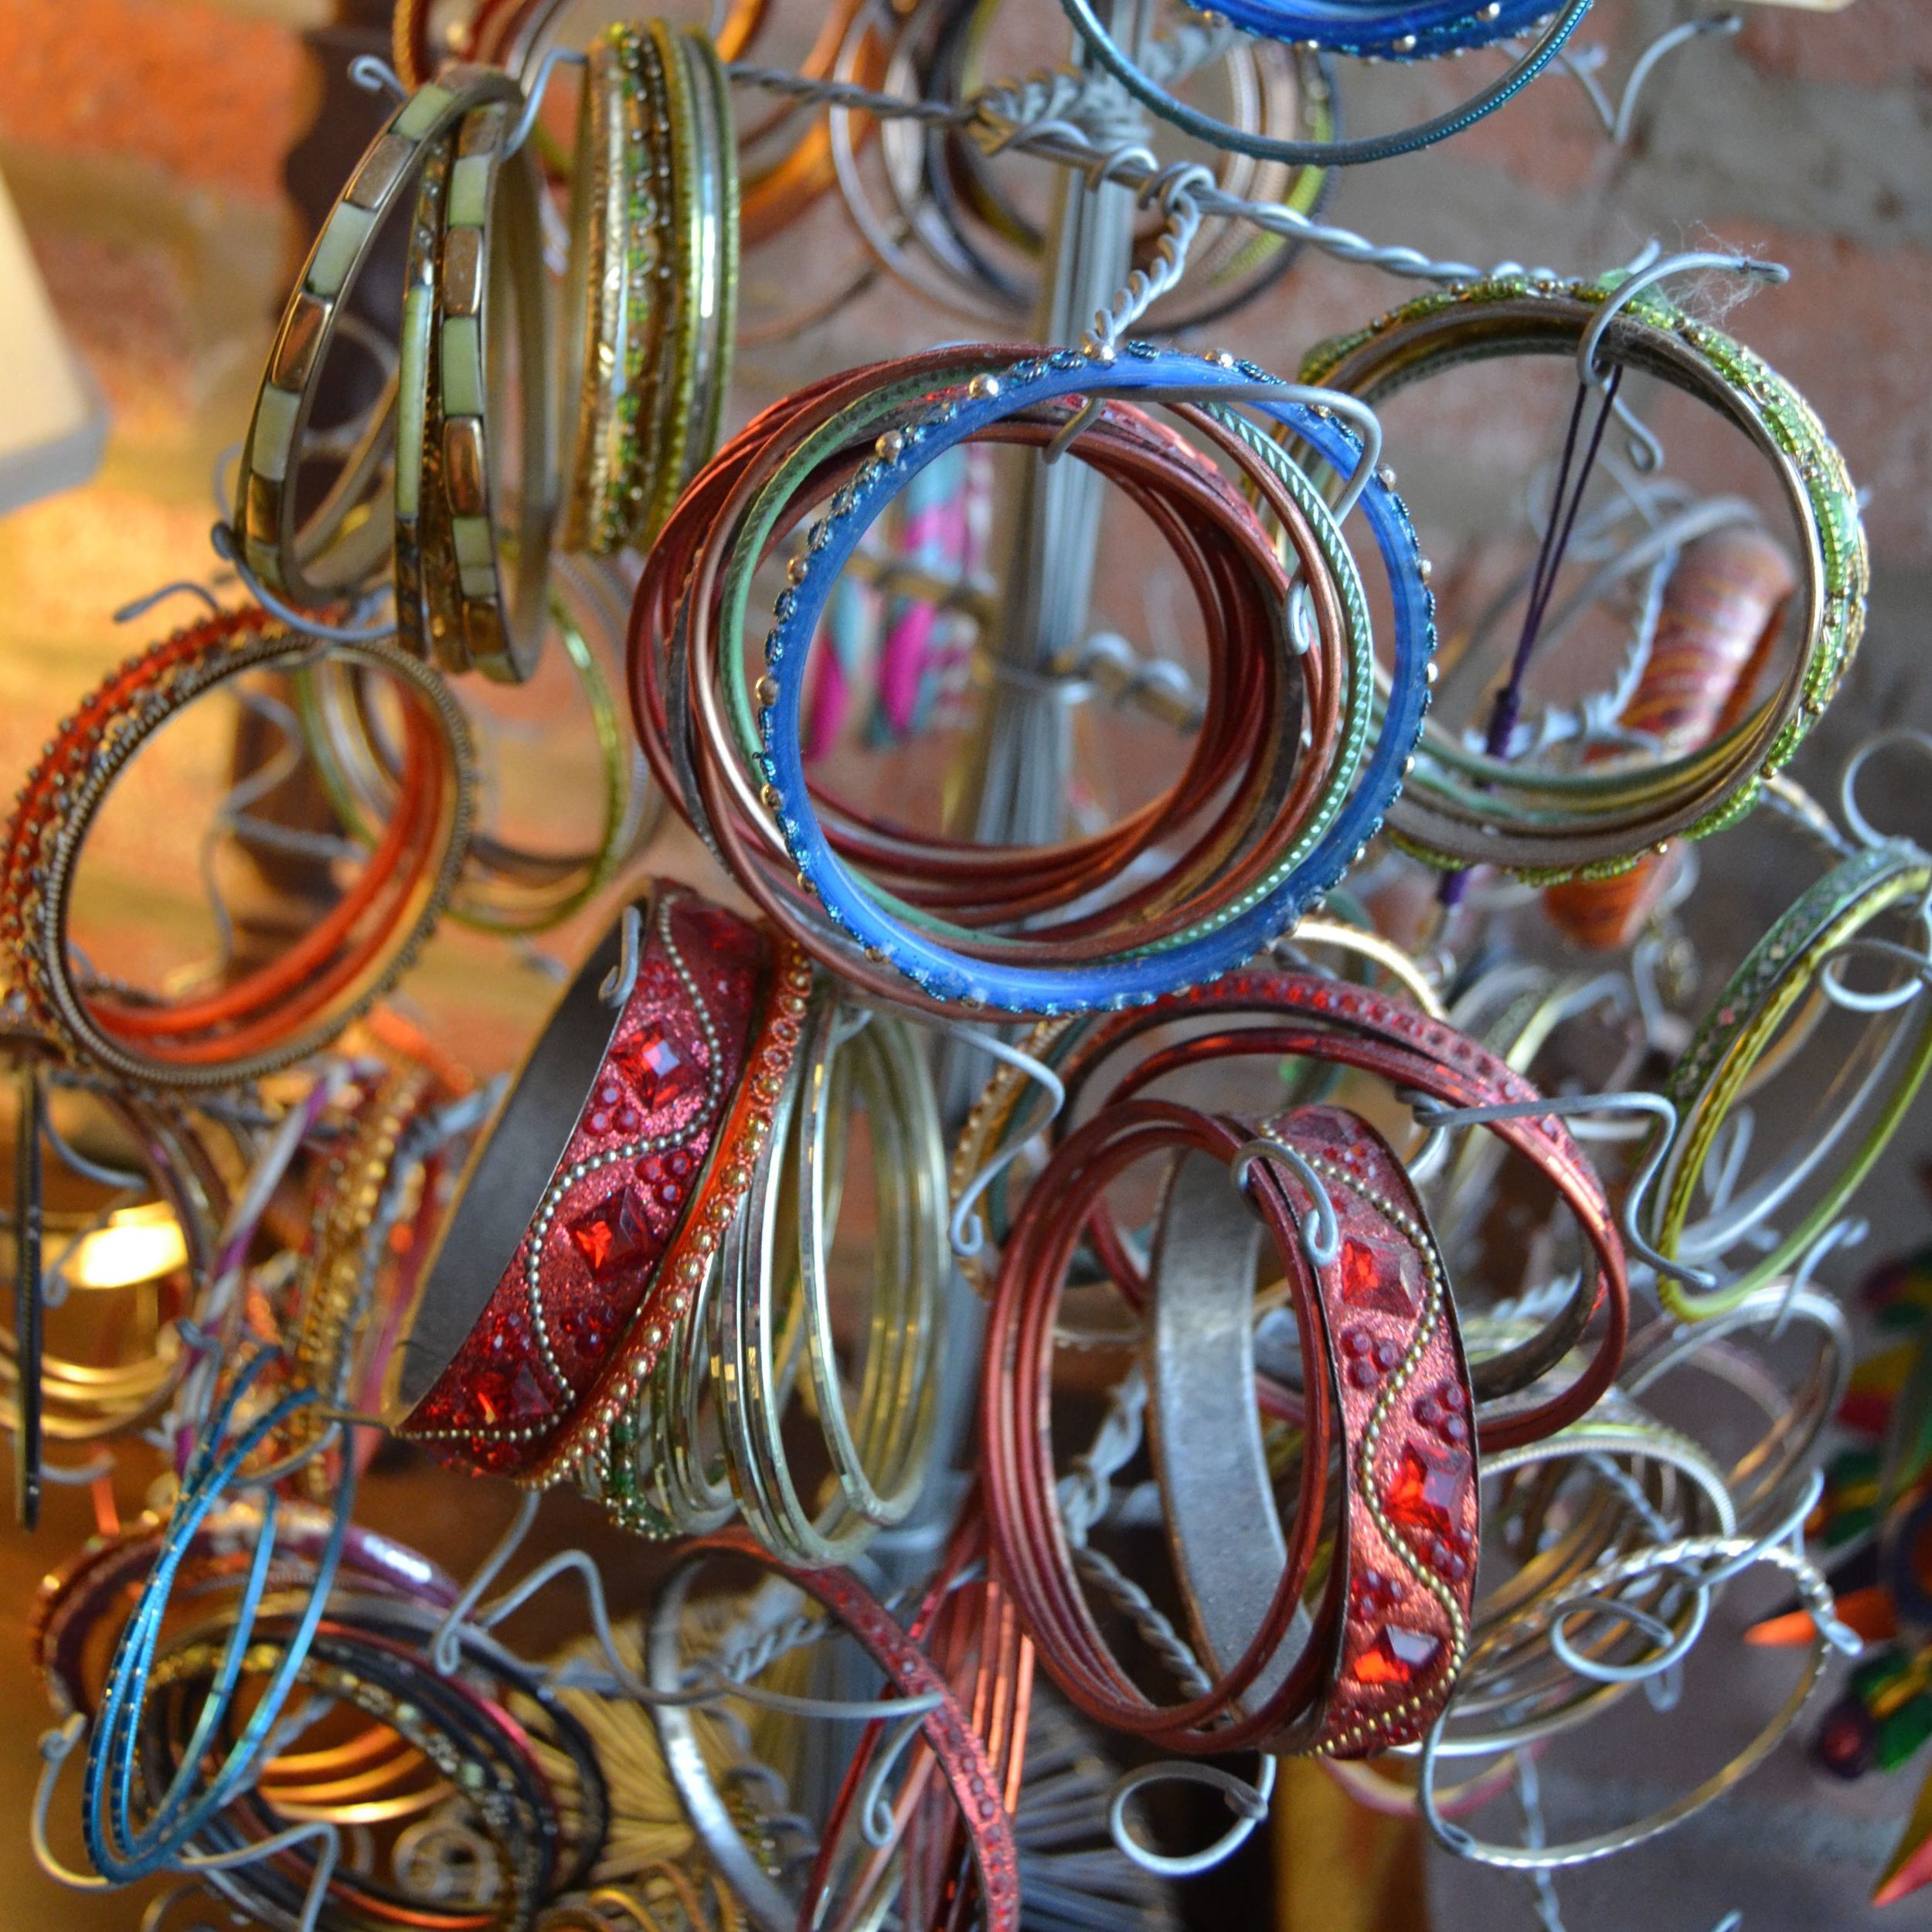 A collection of bangles from Karina's summer in India.